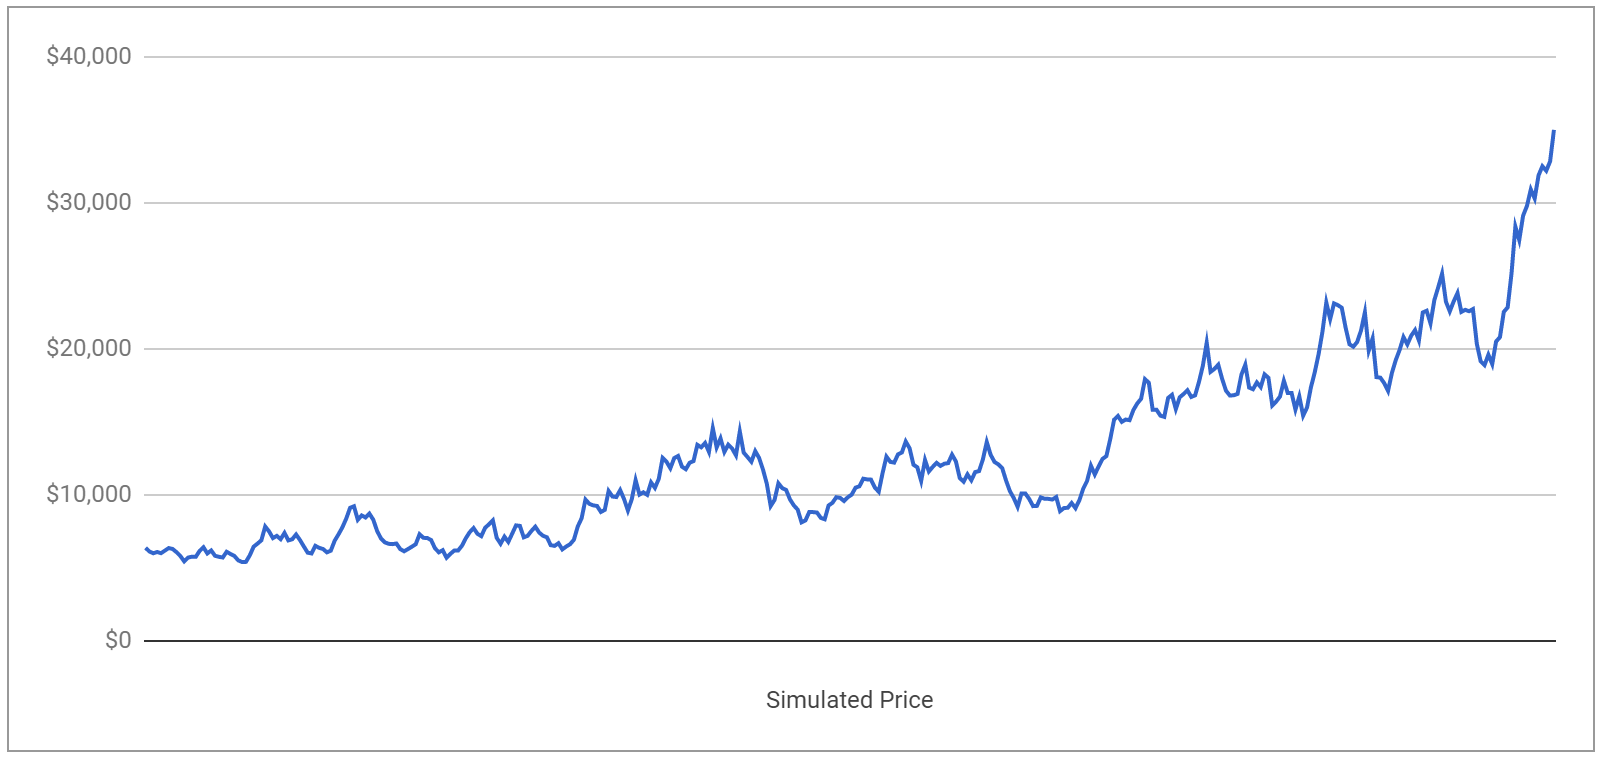 Simulated Price for One Year